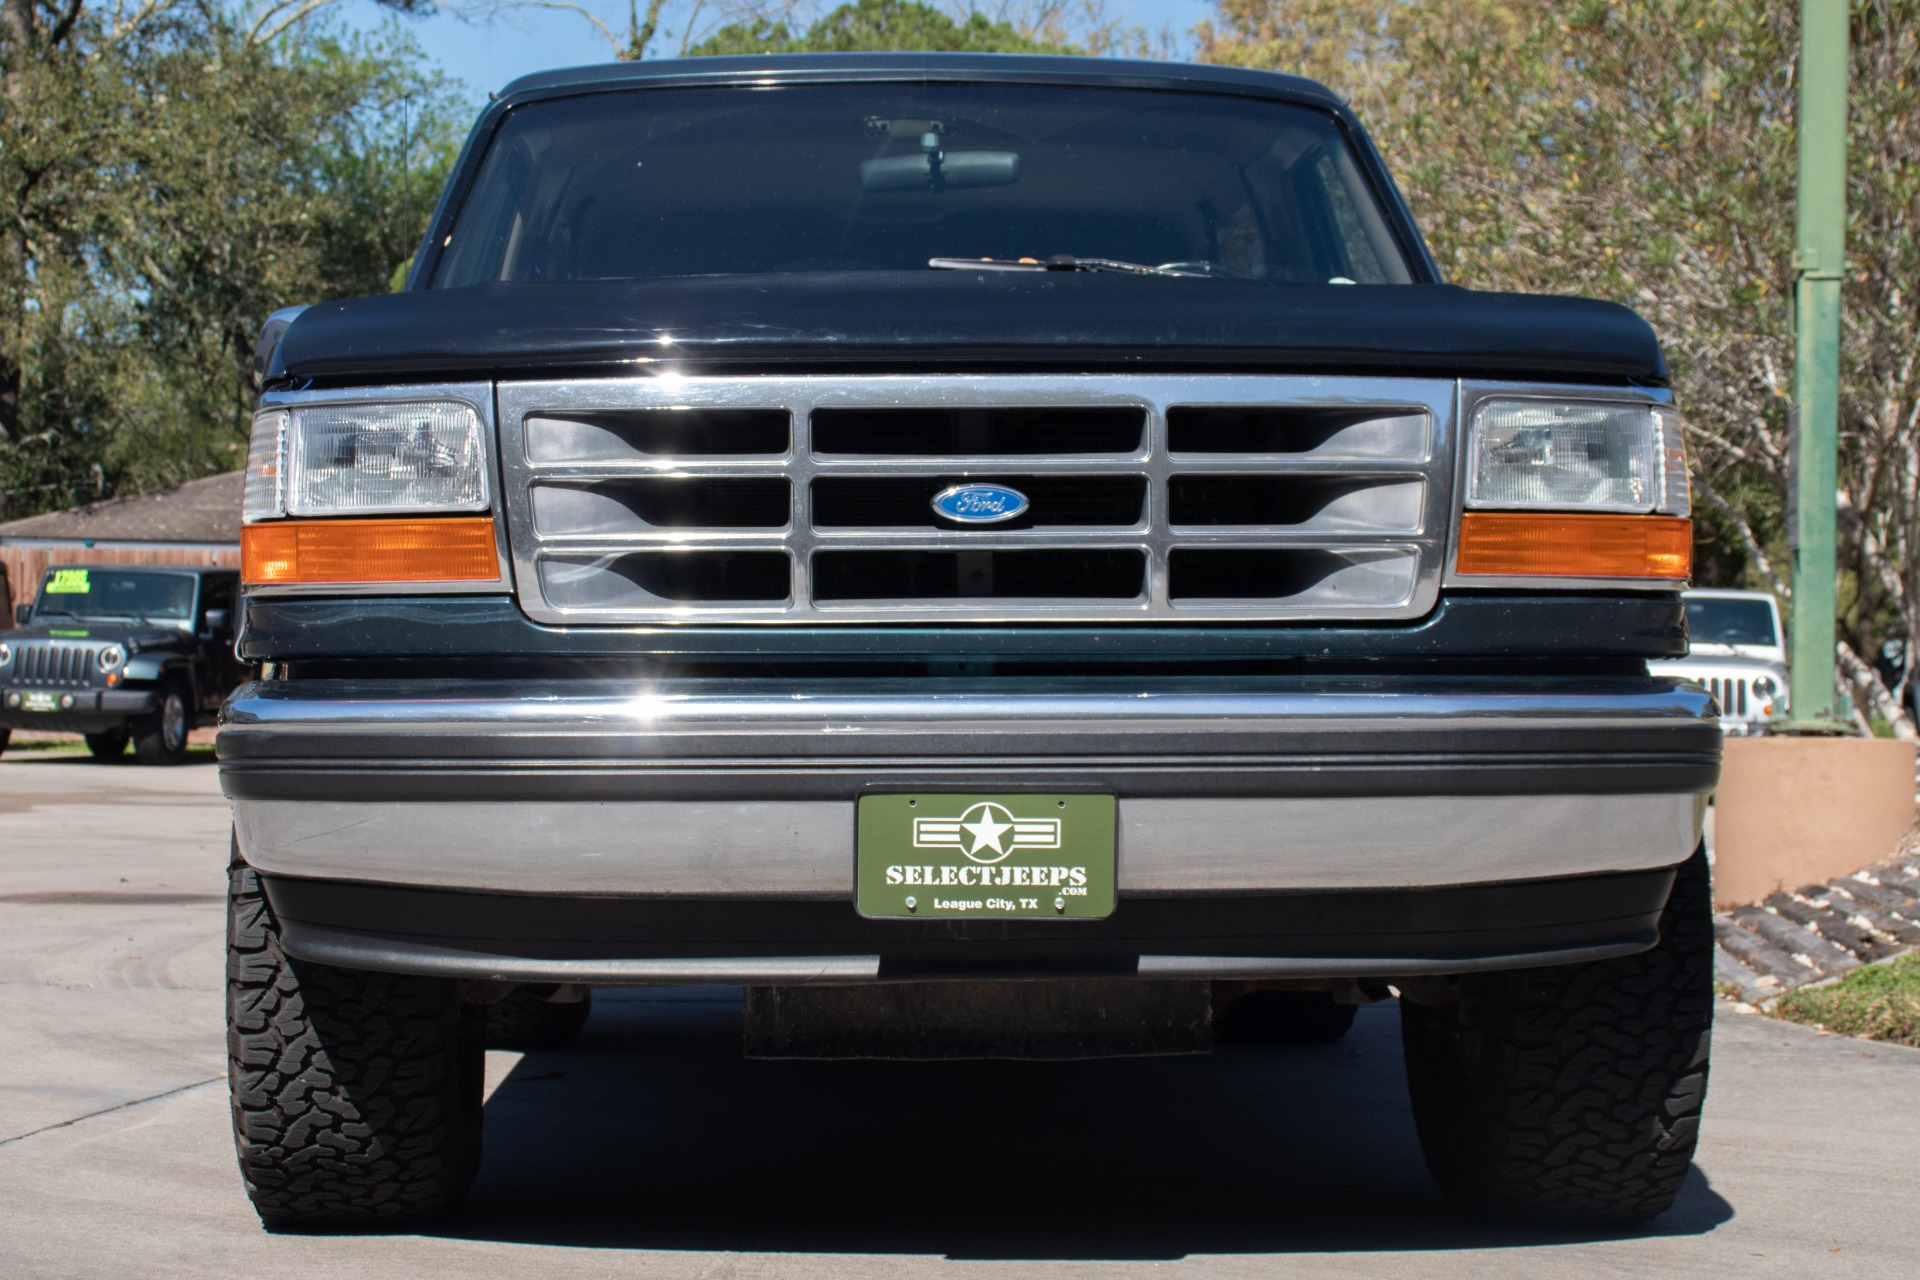 used 1994 ford bronco xlt for sale 13 995 select jeeps inc stock a78452 used 1994 ford bronco xlt for sale 13